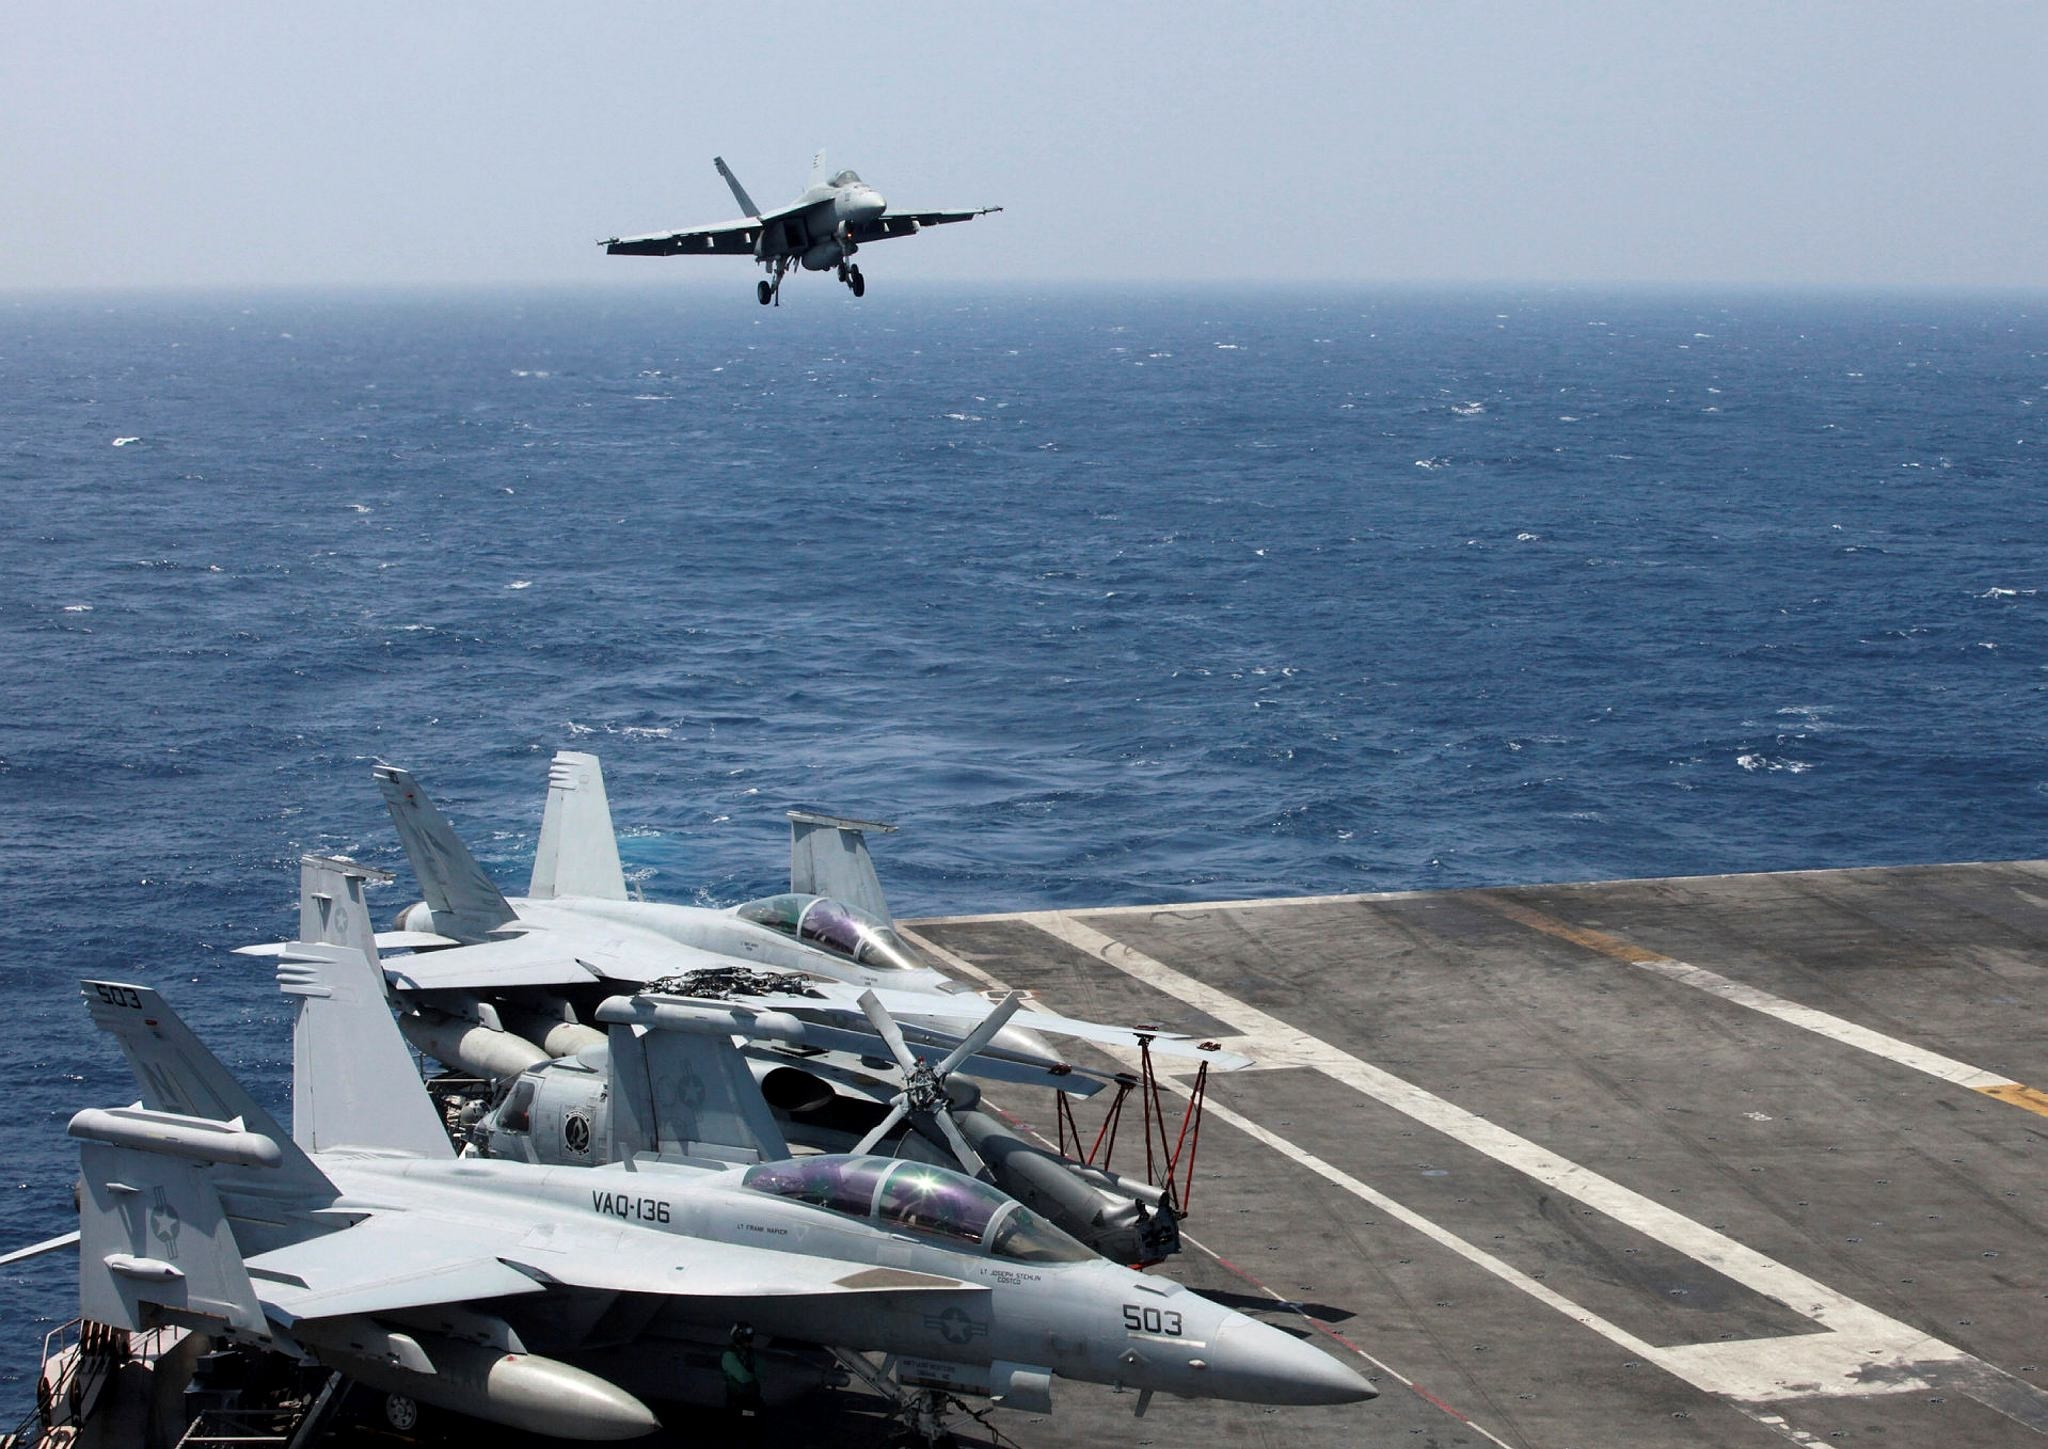 A F18 fighter jet lands on the U.S. Navy aircraft carrier USS Carl Vinson (CVN 70) following a patrol off the disputed South China Sea on March 3.